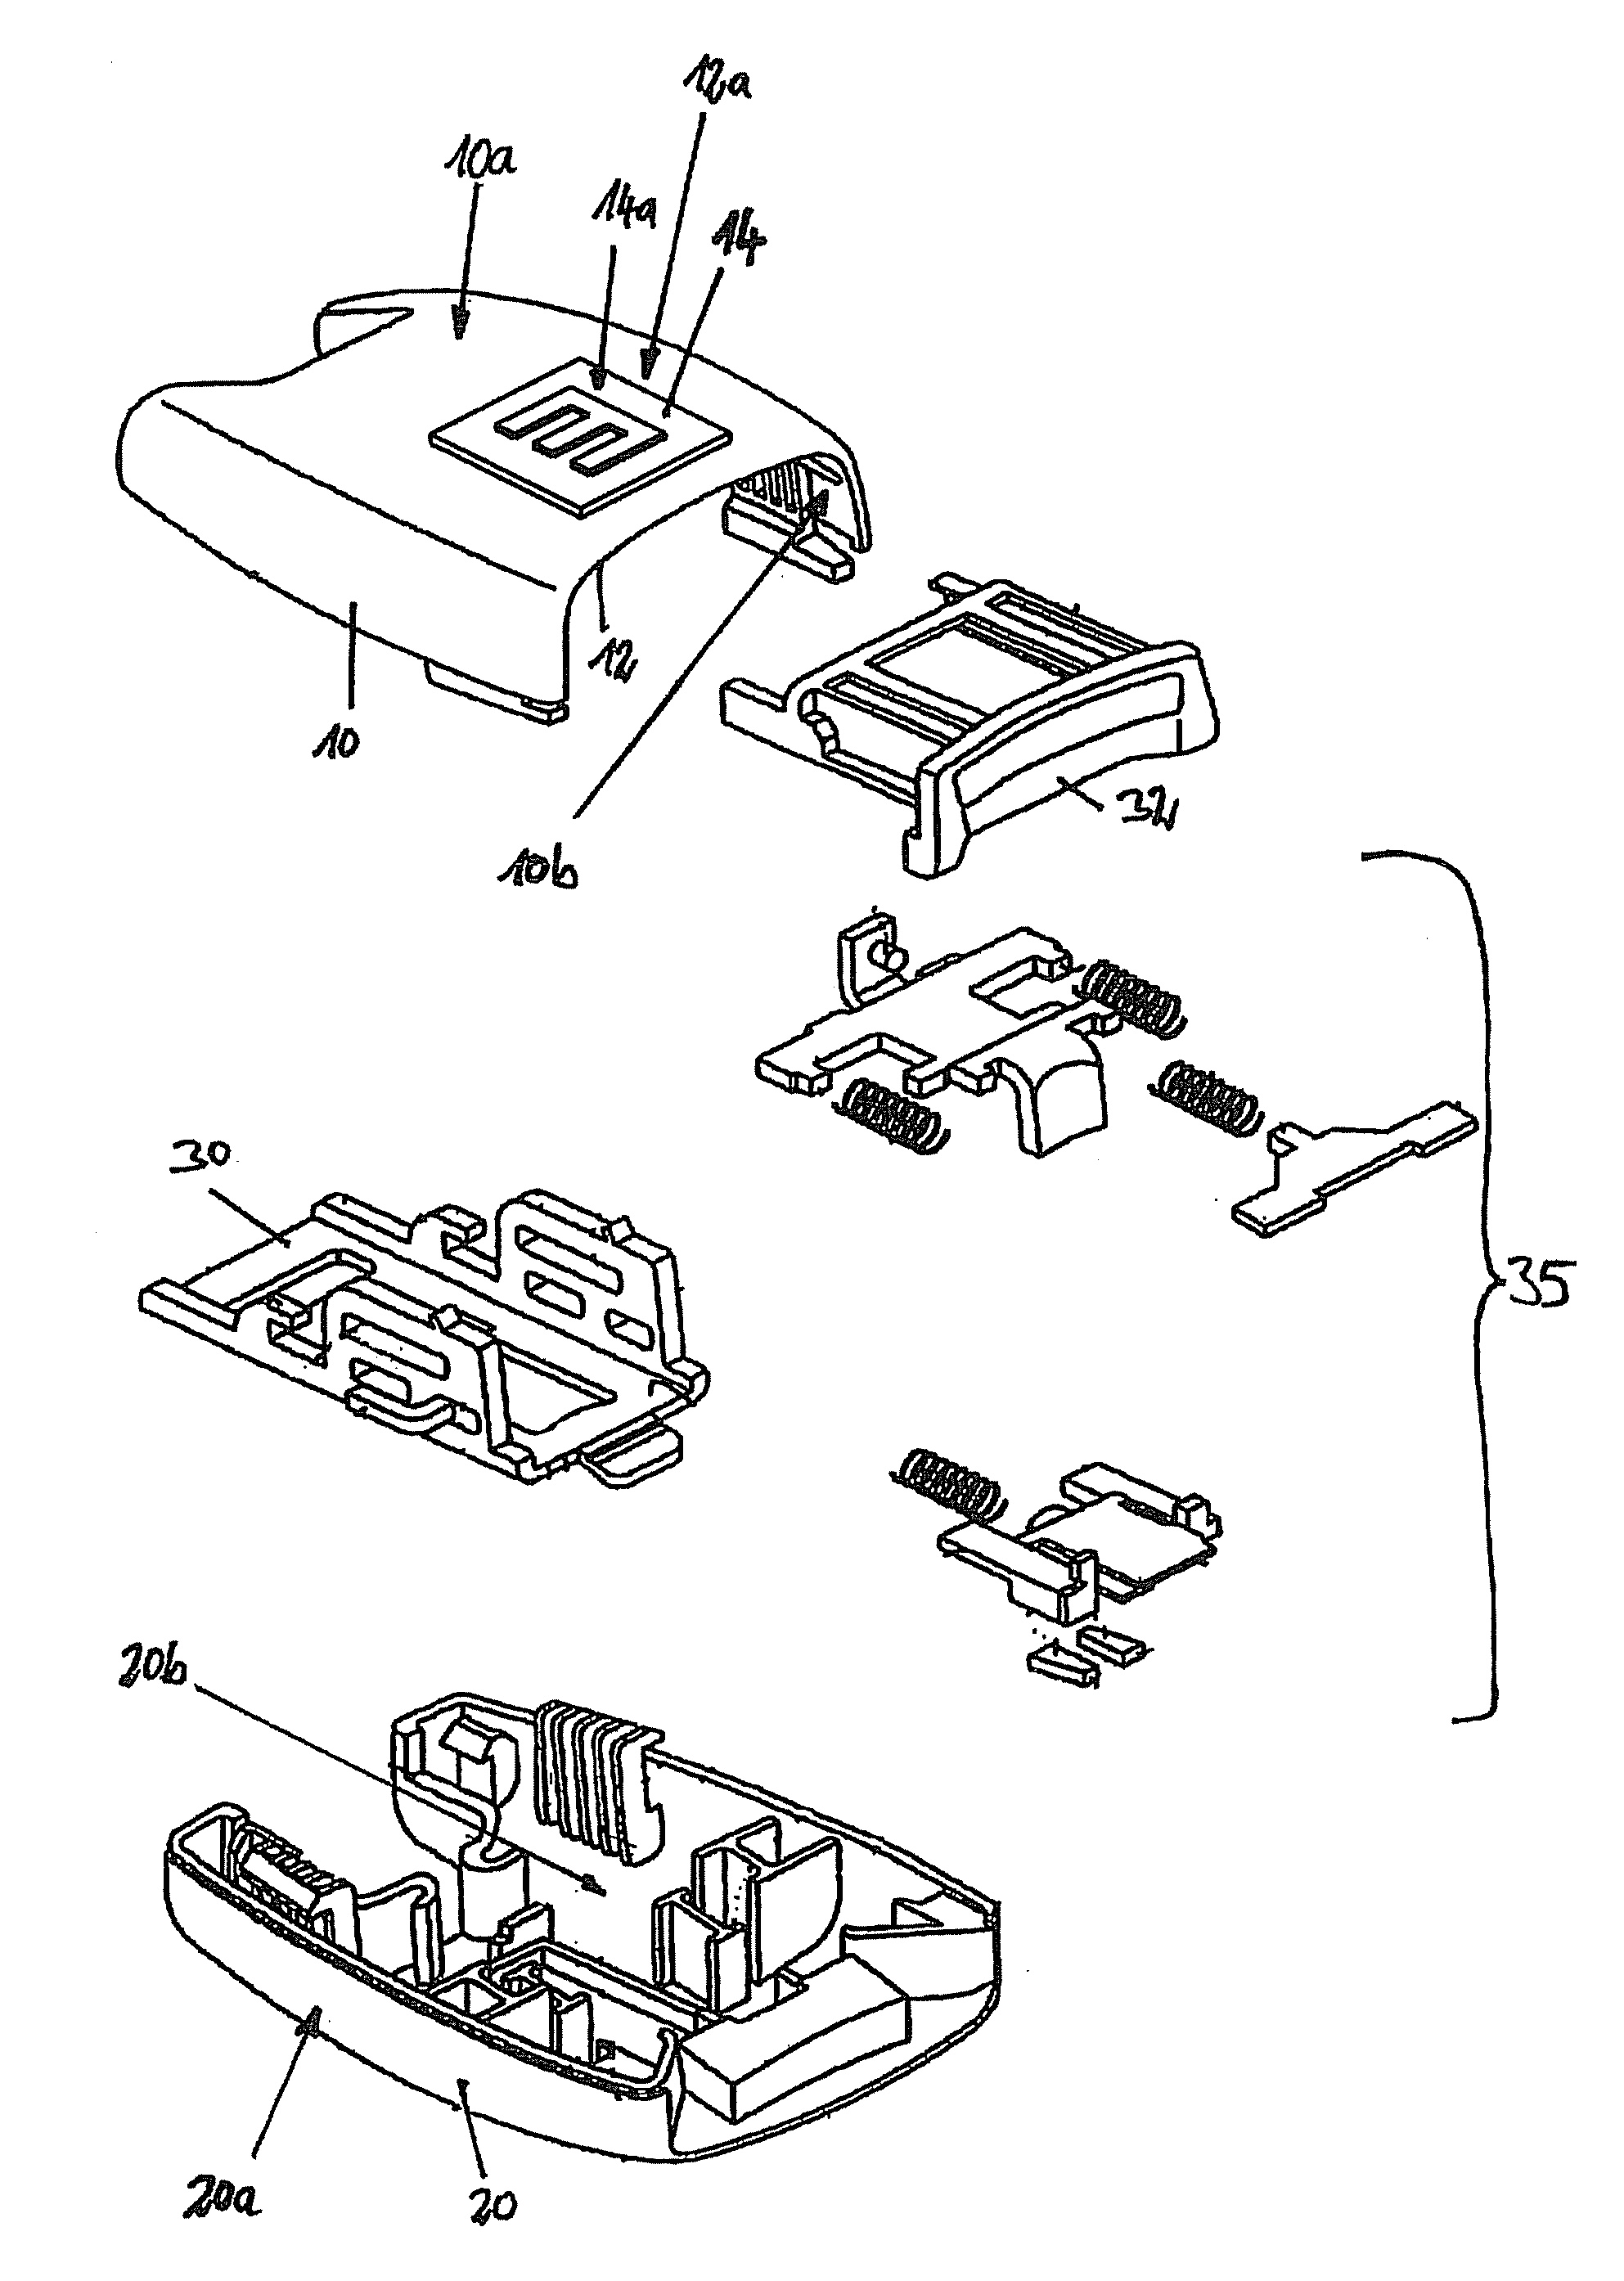 Seat Belt Mechanism Diagram on car part names and diagrams